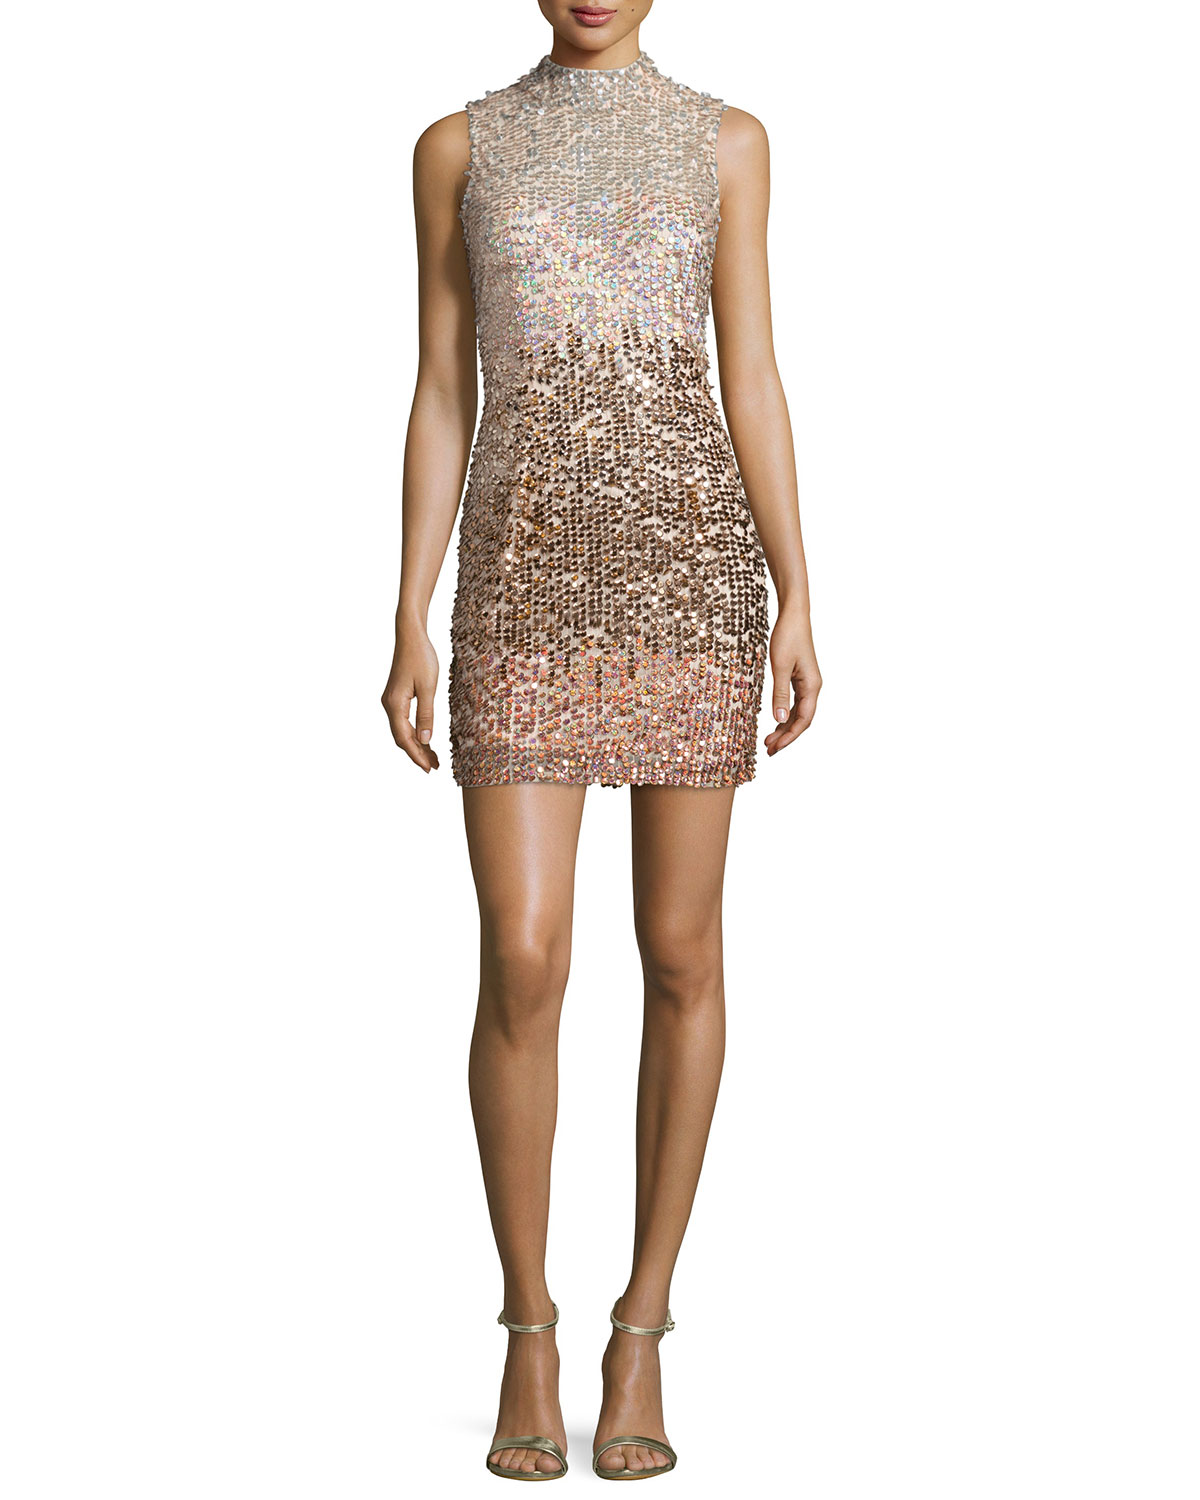 Cosmic Beam Embellished Mini Dress, Bellini, Size: 0, Bellin - French Connection